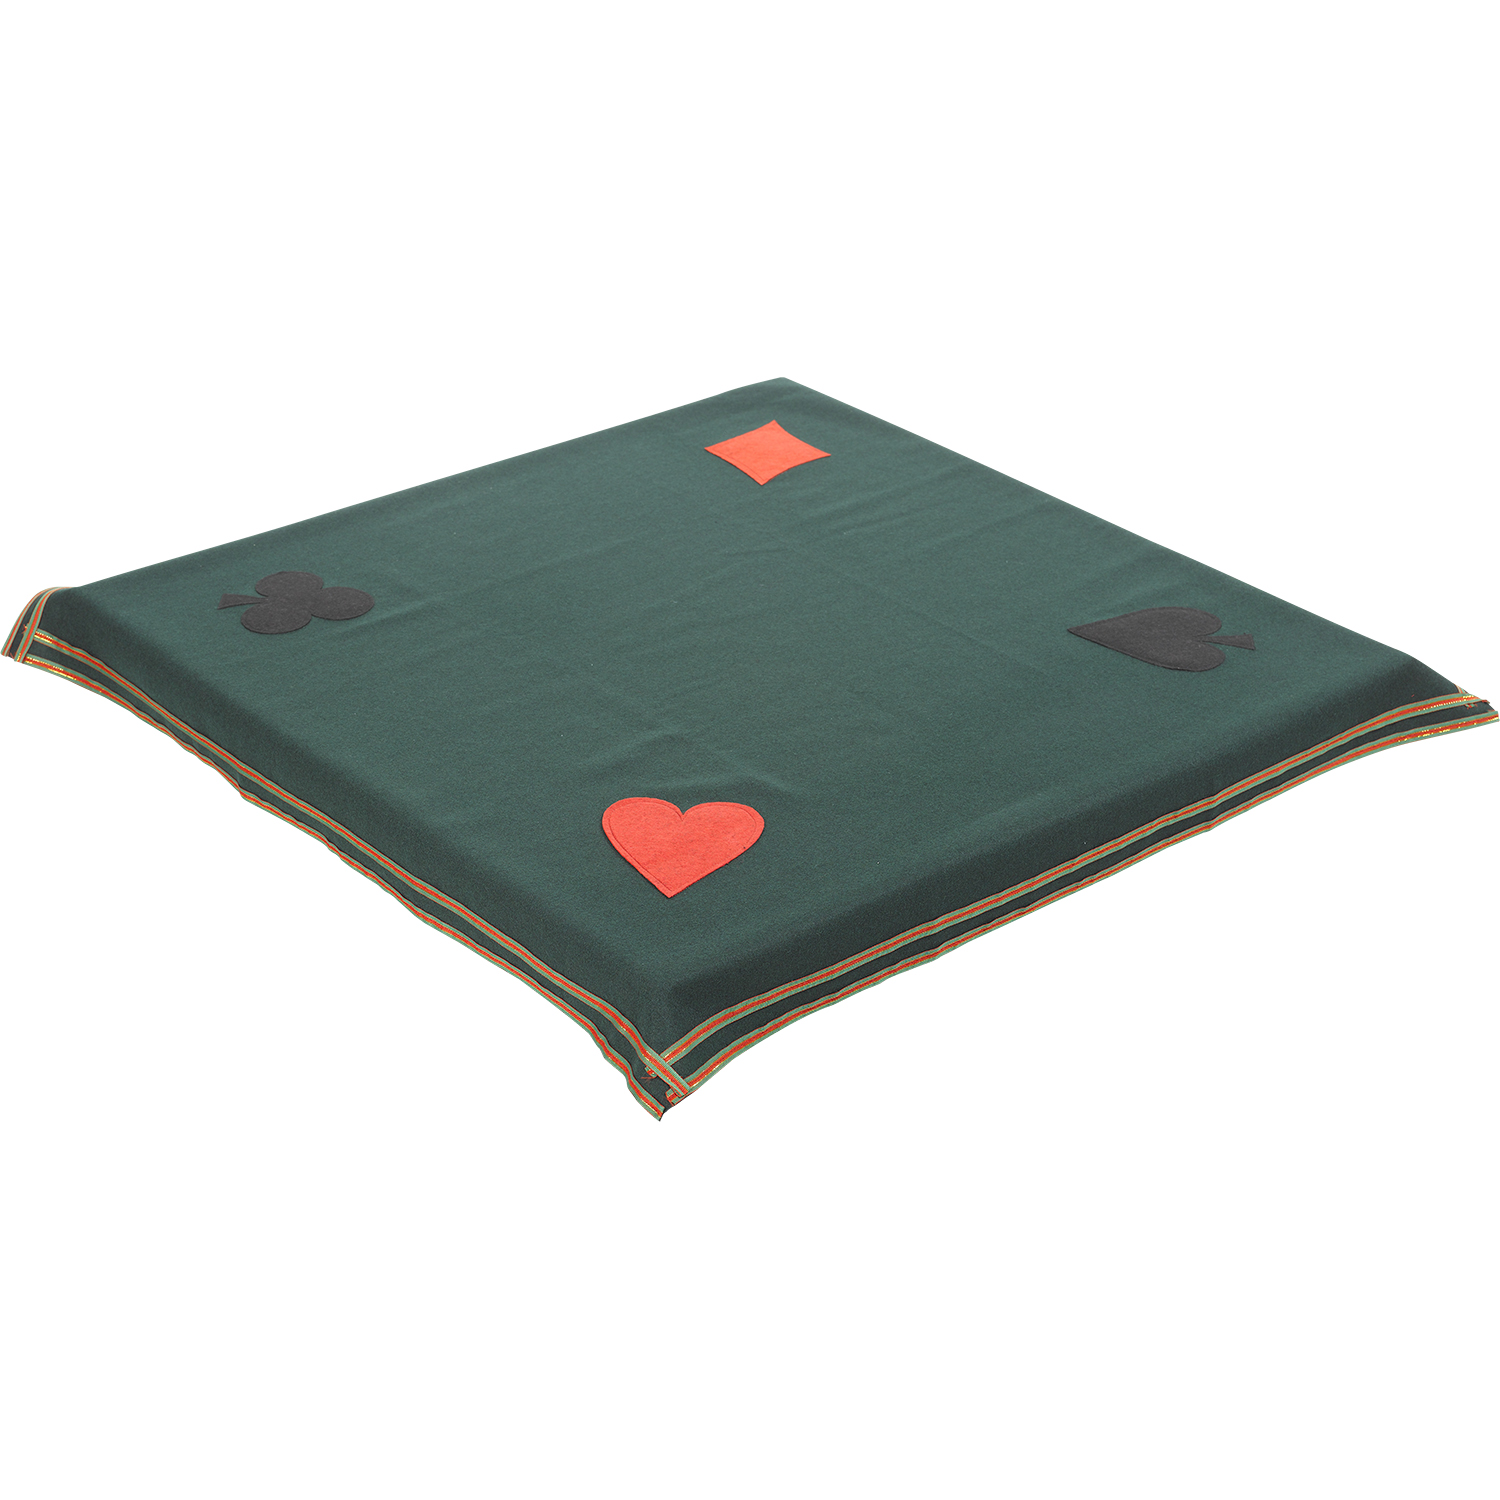 This Gaming Table Cloth Is Green With A Red And Gold Striped Edge And A  Heart, Club, Diamond Or Spade In Each Corner. Perfect For Card Games Such  As Bridge ...